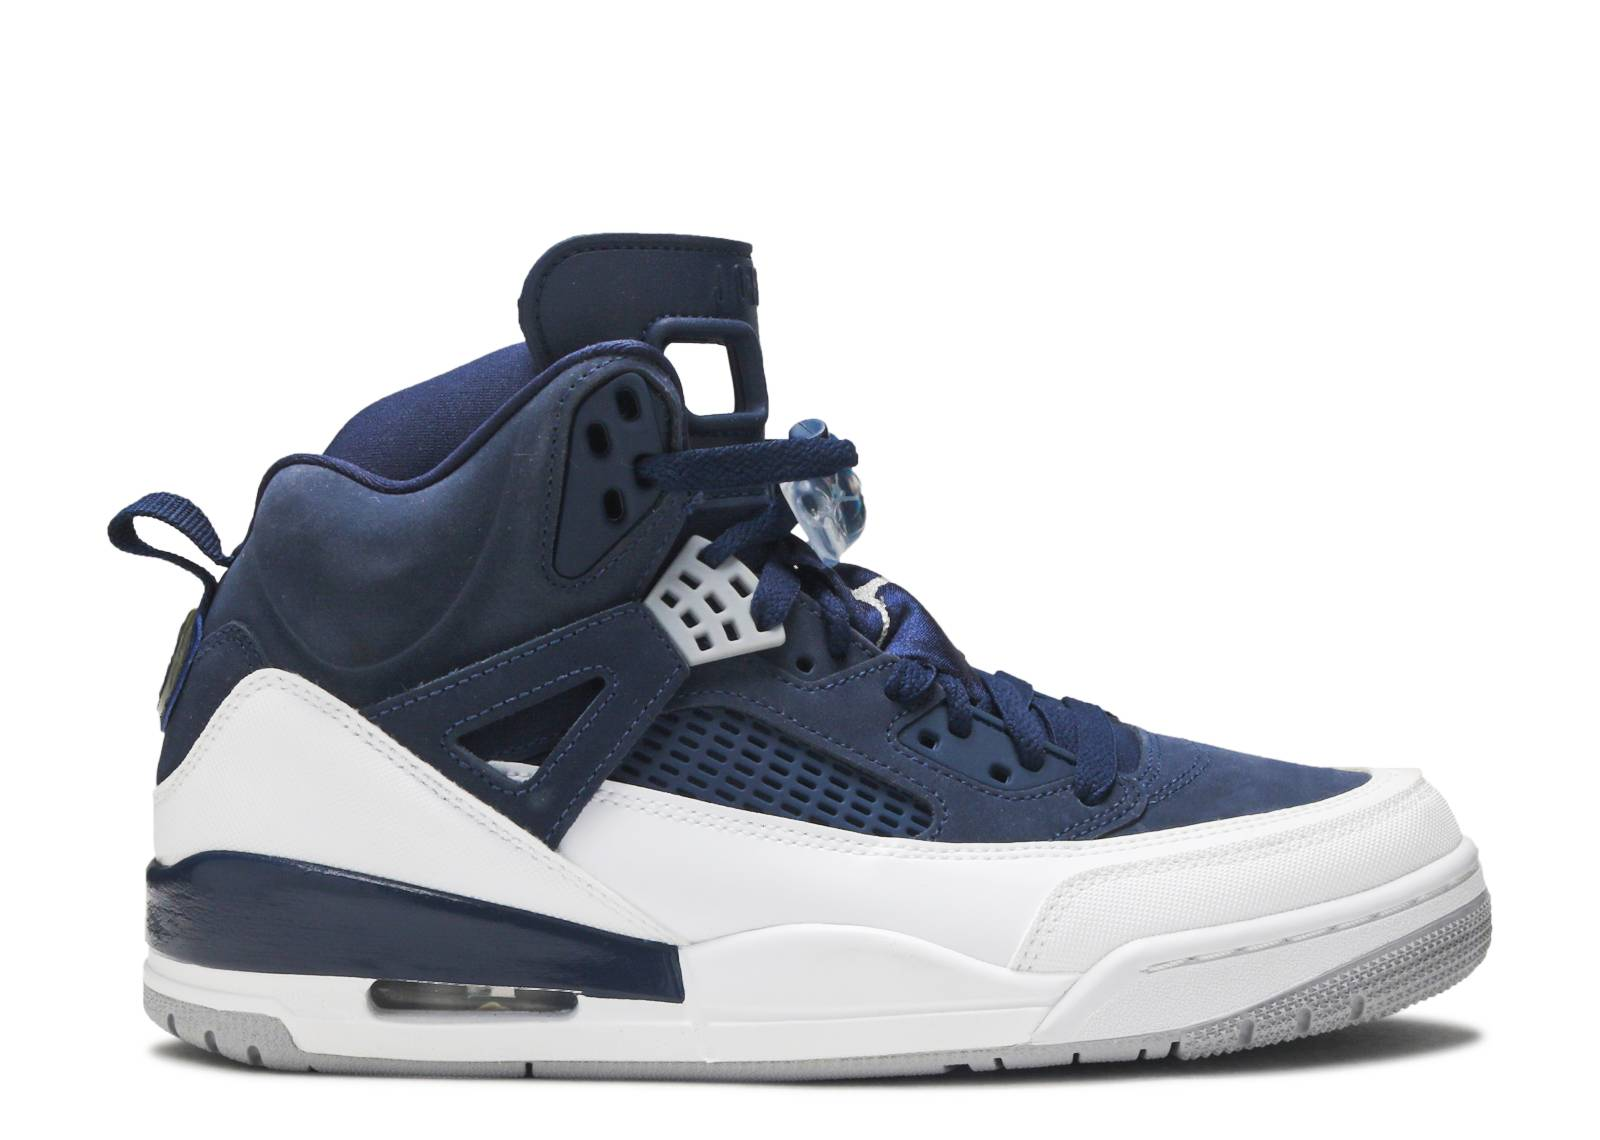 Jordan Spizike - Air Jordan - 315371 406 - midnight navy metallic ... 41cb9cd5d